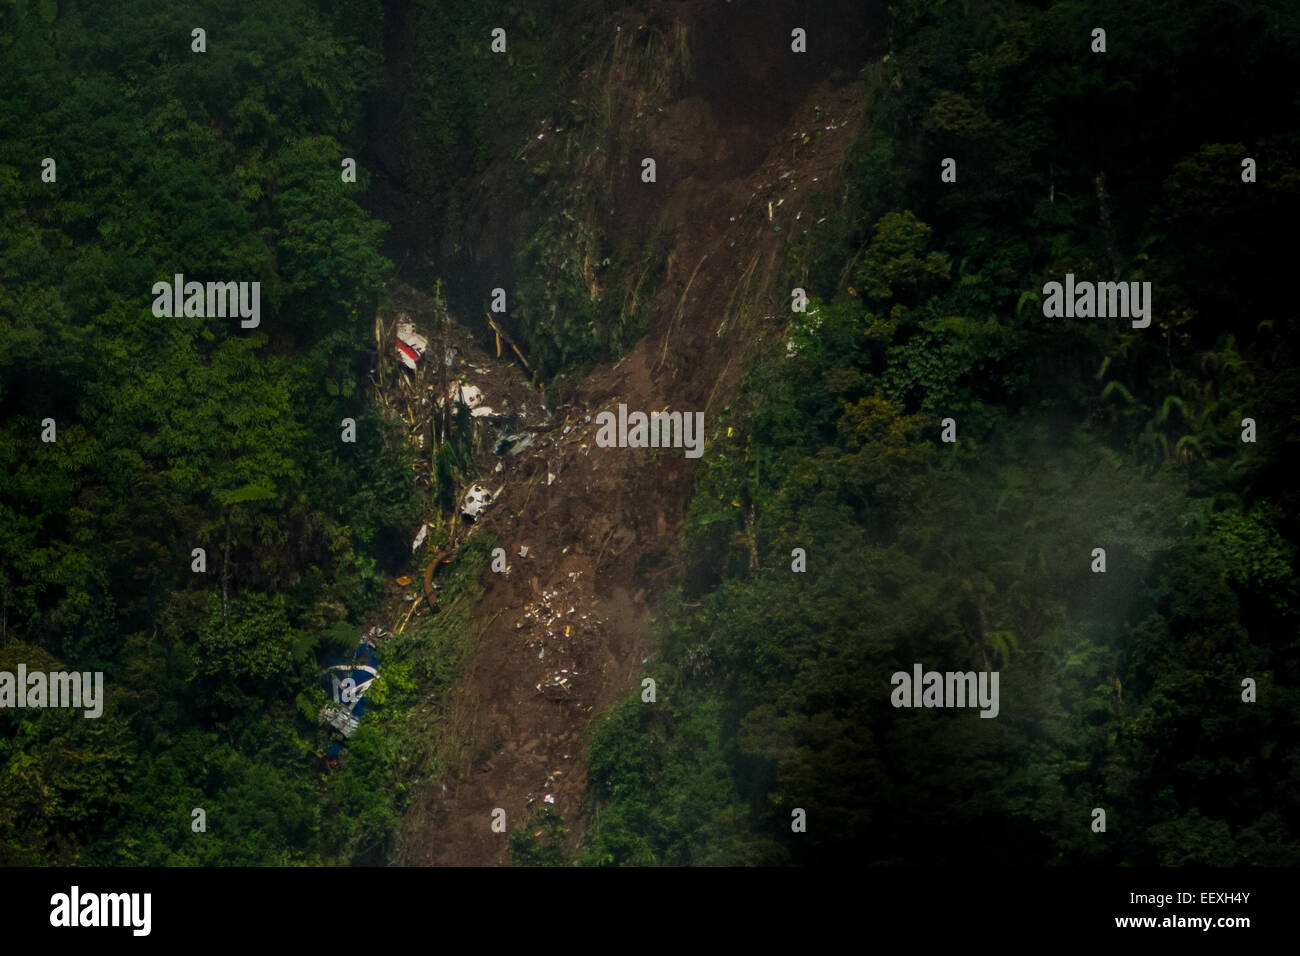 Sukhoi Superjet 100 (SSJ-100) crash site atop Mount Salak, two days after accident. - Stock Image